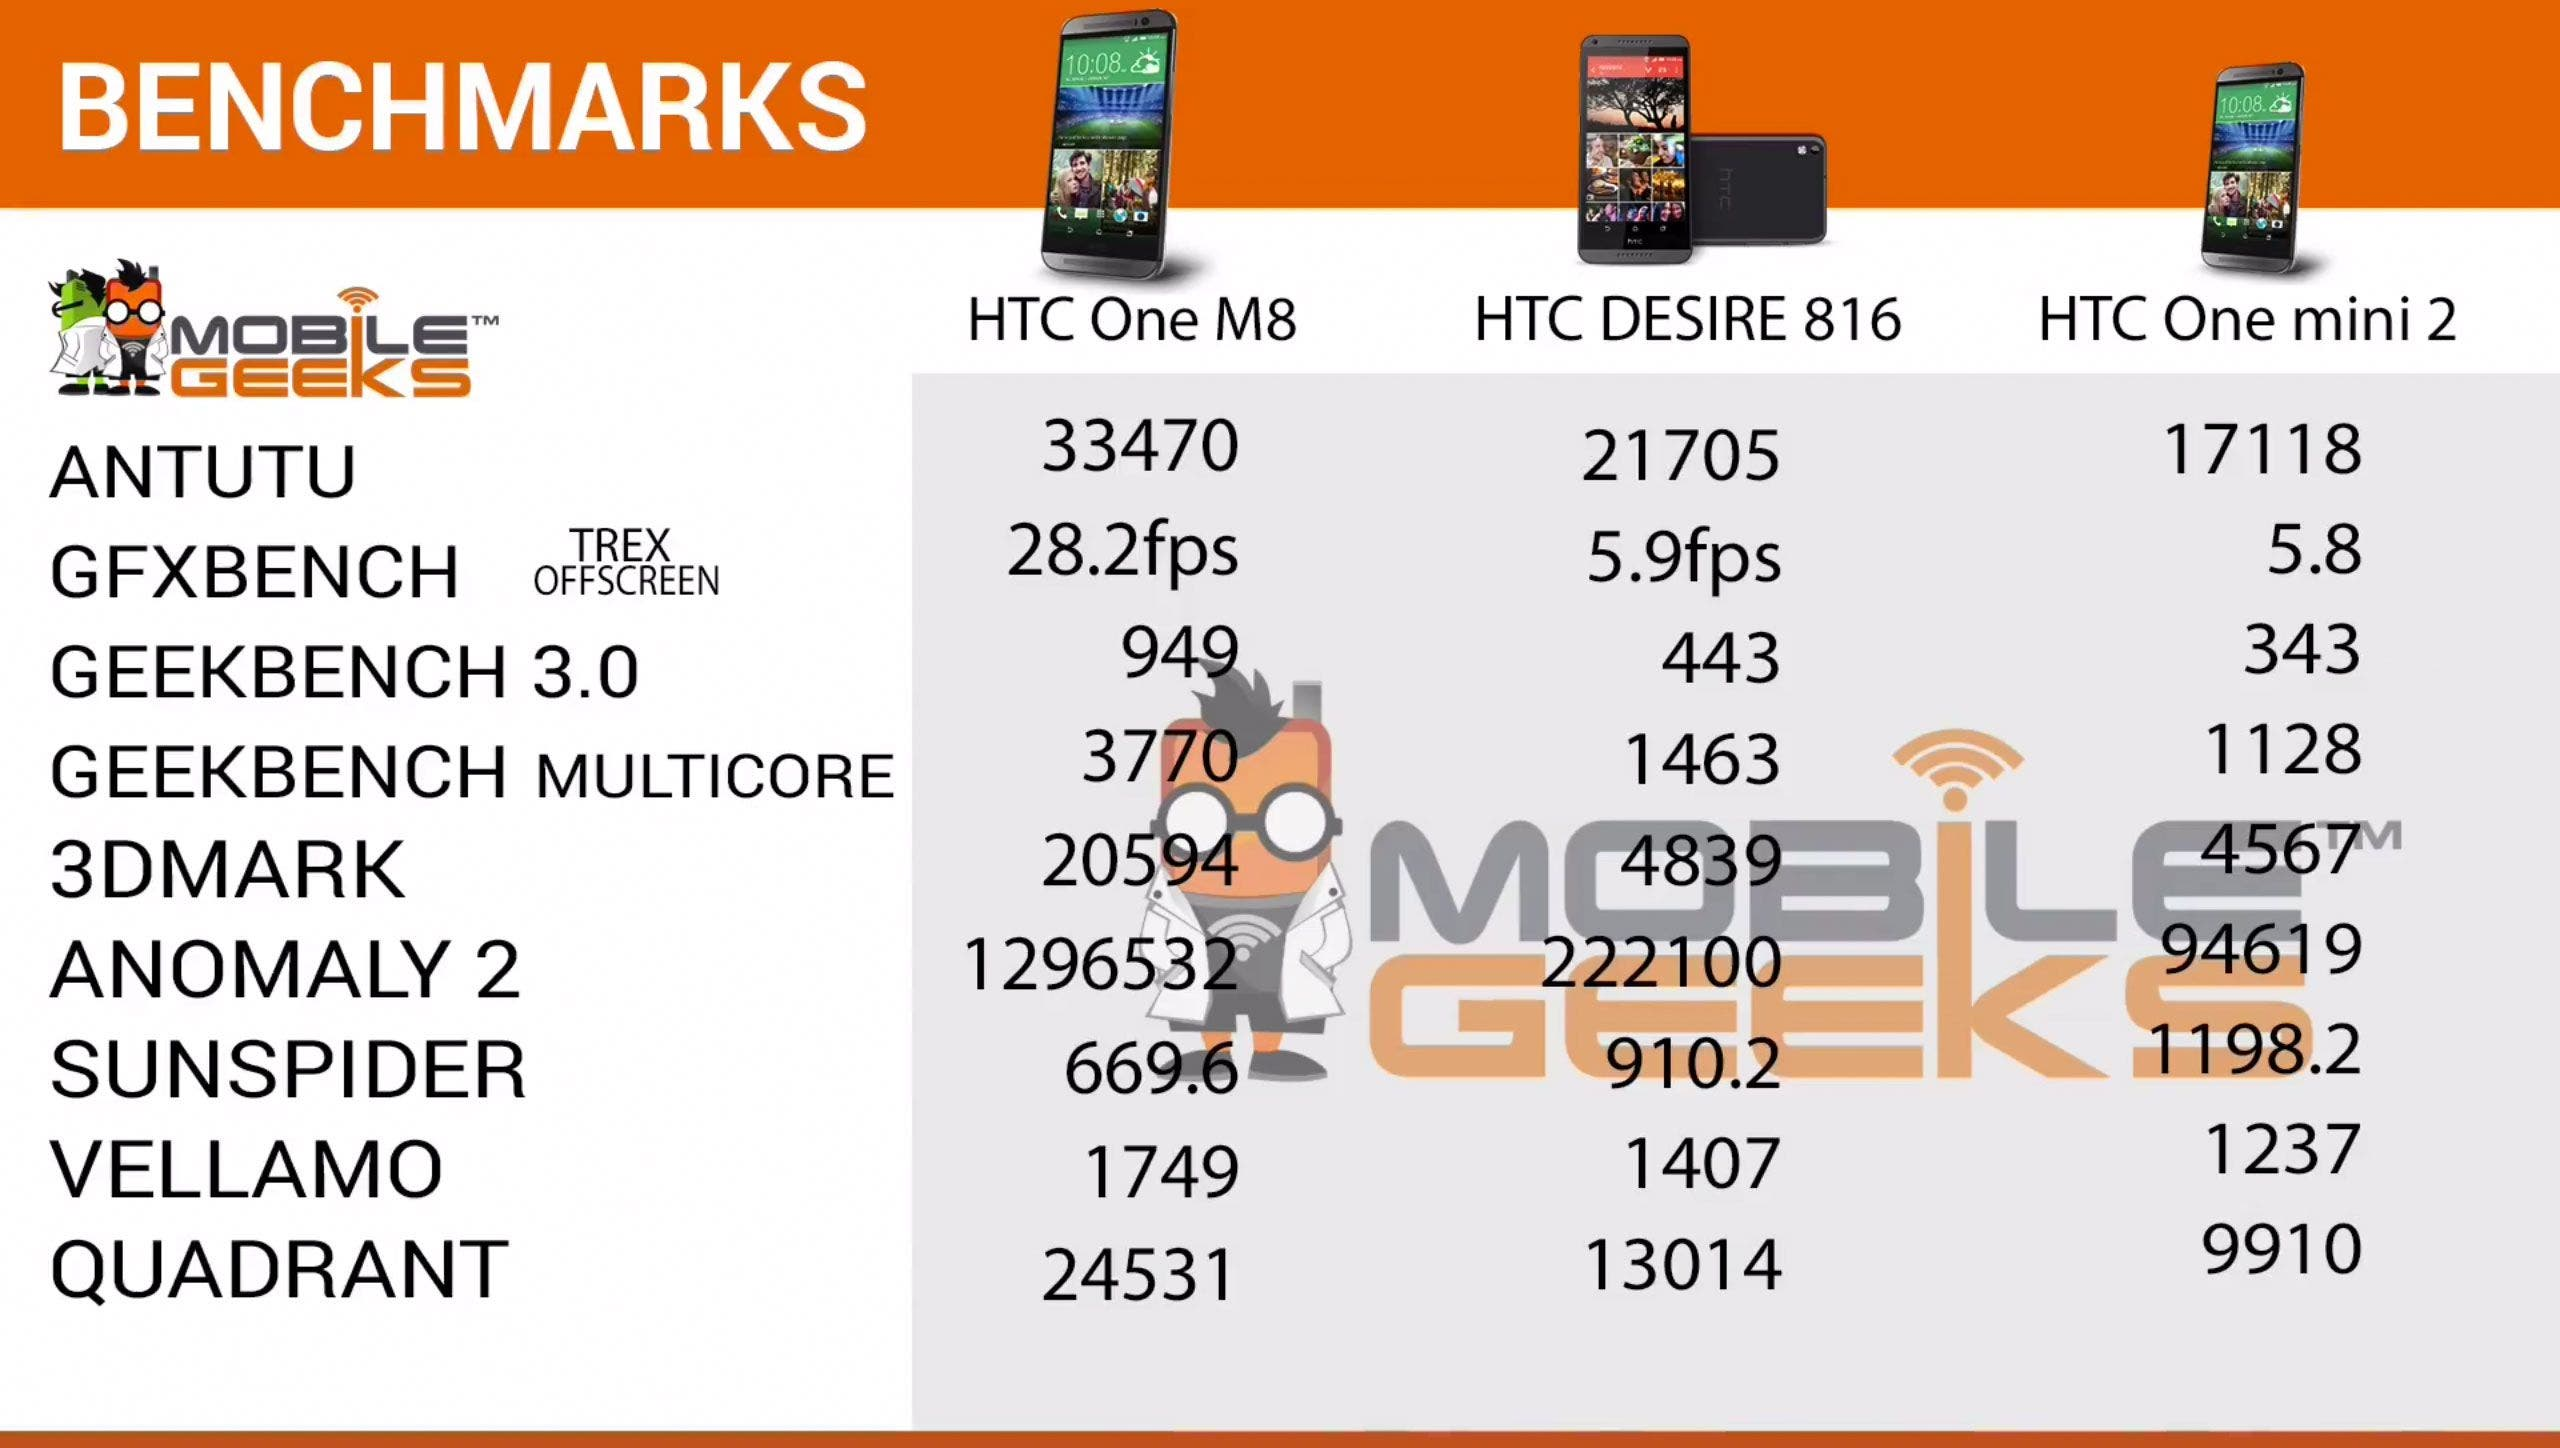 HTC-One-mini-2-Benchmarks